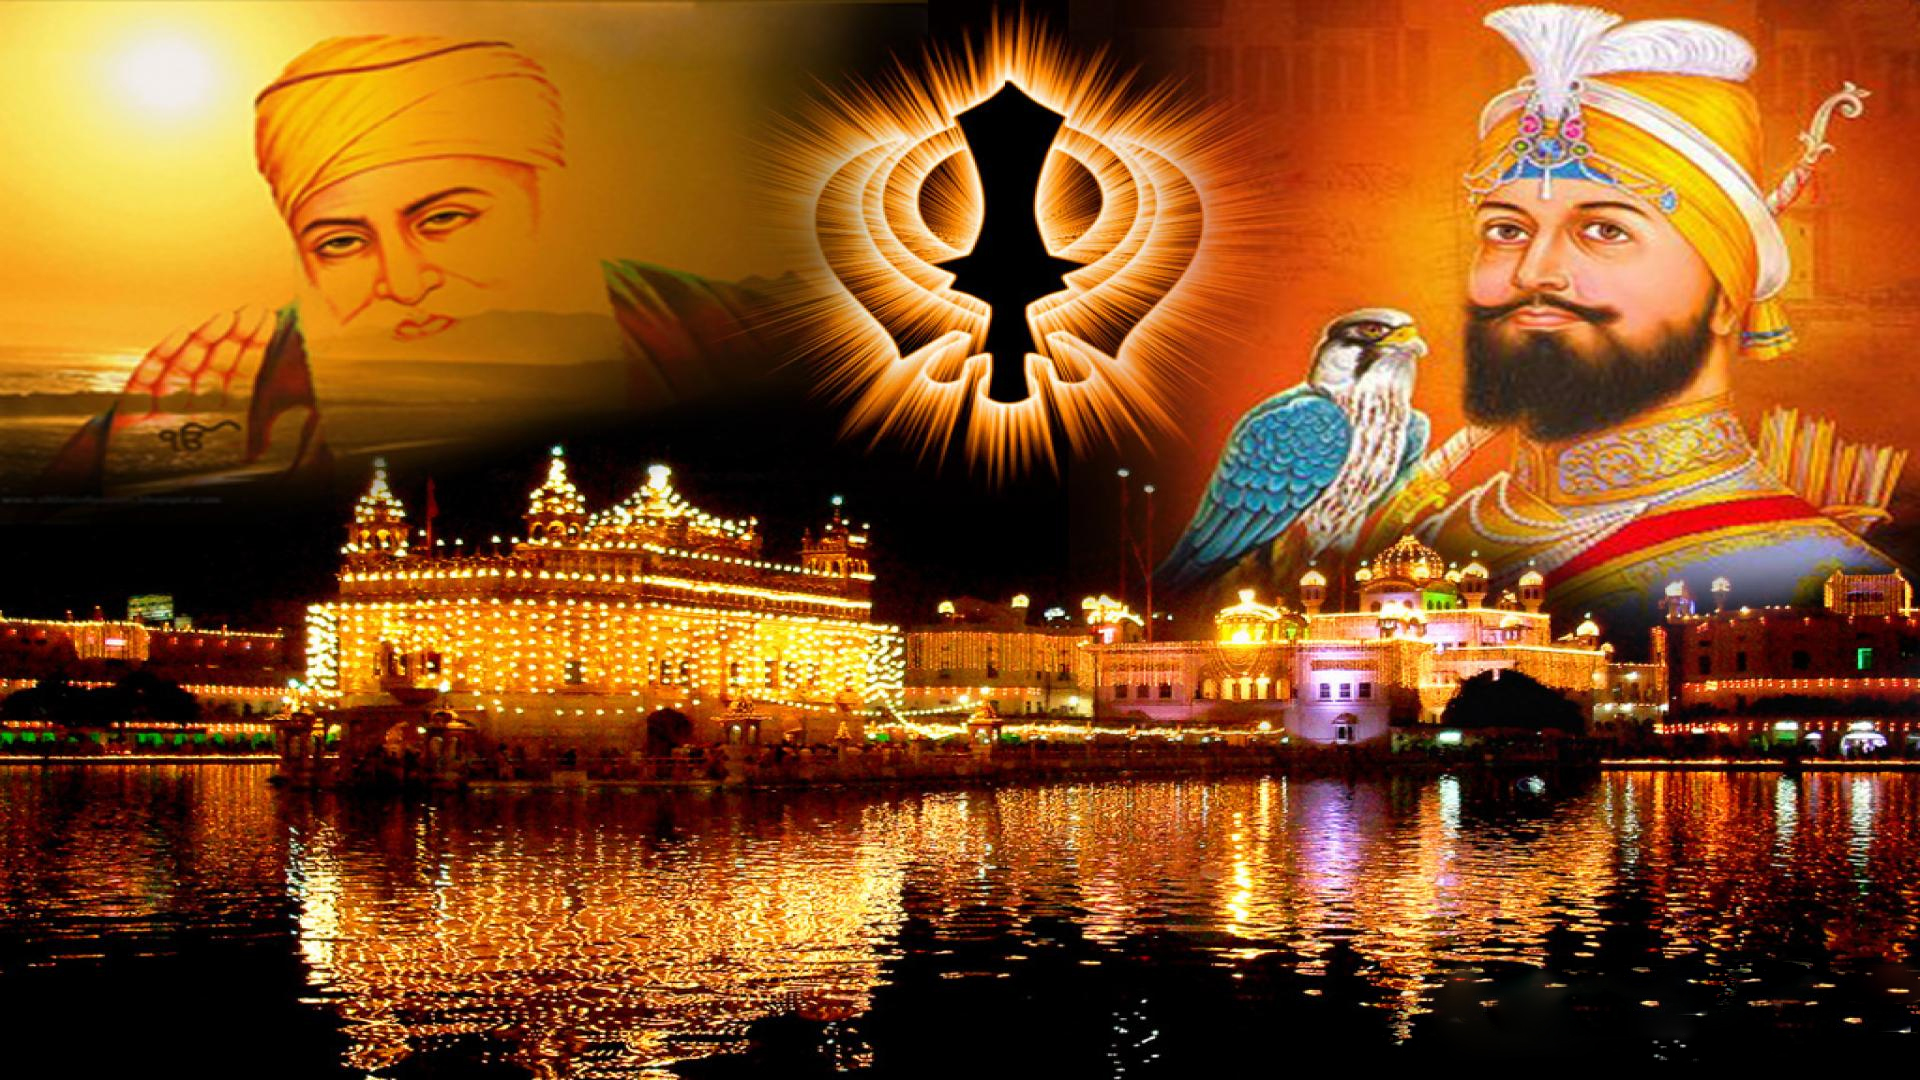 Guru Nanak Dev And Guru Gobind Singh Ji Wallpaper